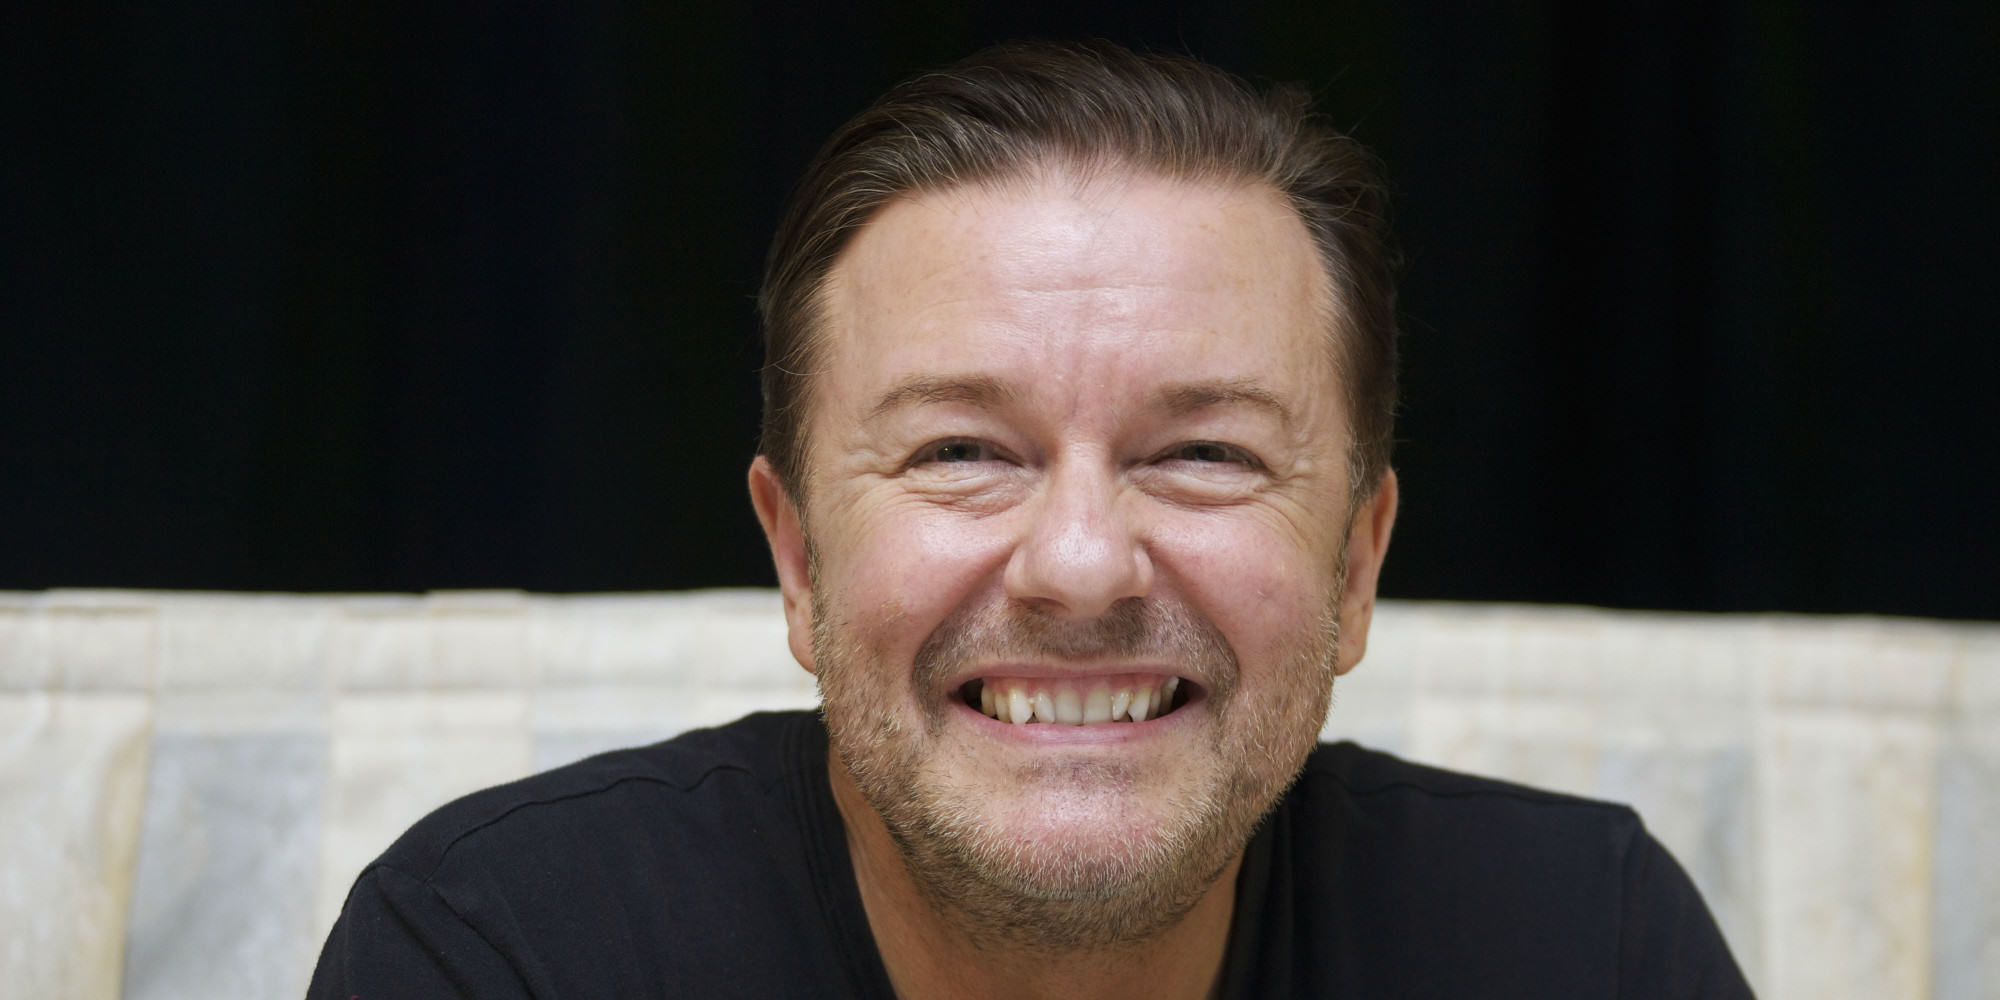 Did Ricky Gervais Go Too Far At The Golden Globes Or Are People Oversensitive? gervais 1